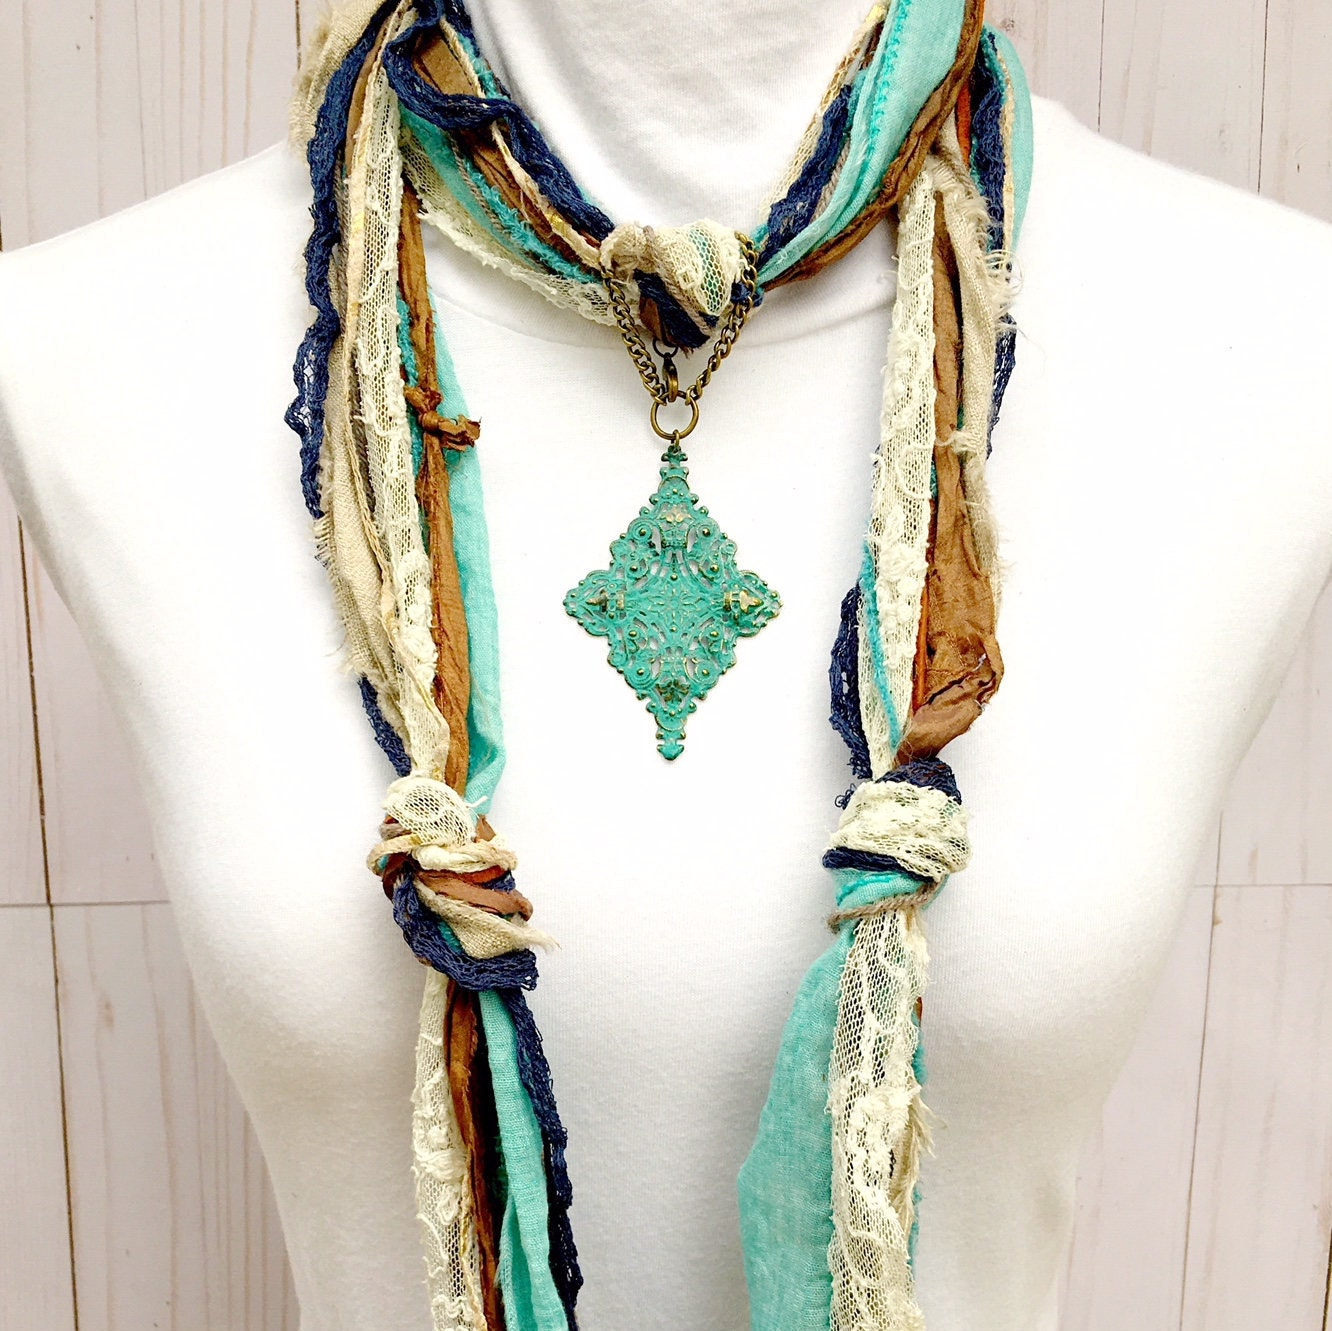 Turquoise scarf jewelry turquoise filigree pendant scarf turquoise scarf jewelry turquoise filigree pendant scarf necklace jewelry metal turquoise scarf pendant scarf ring scarf slide aloadofball Image collections